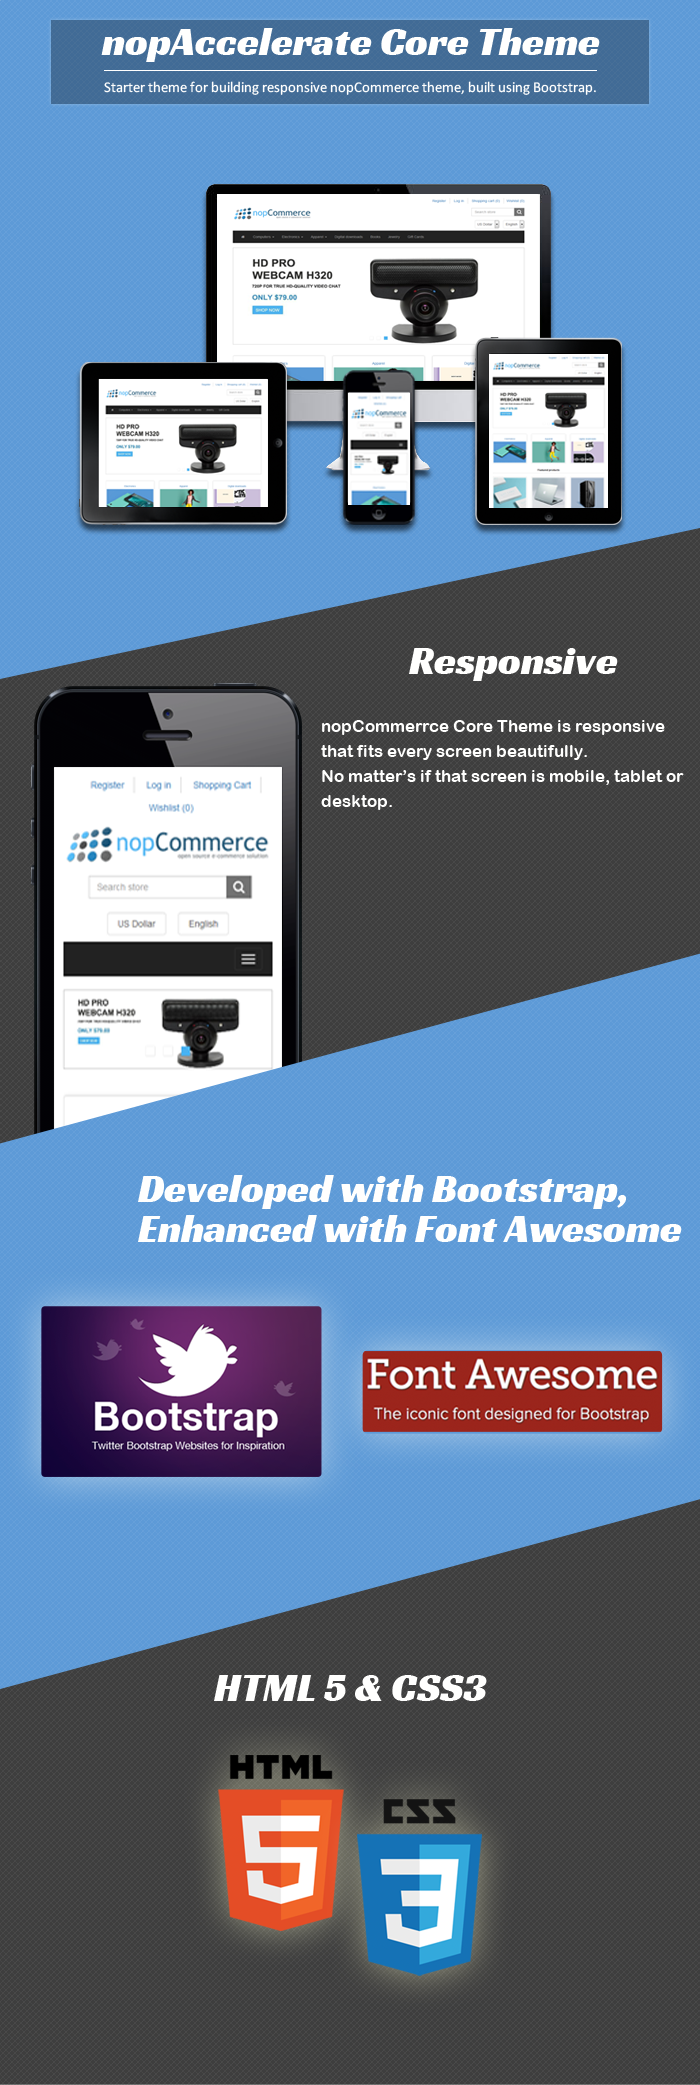 best nopcommerce starter theme build using bootstrap